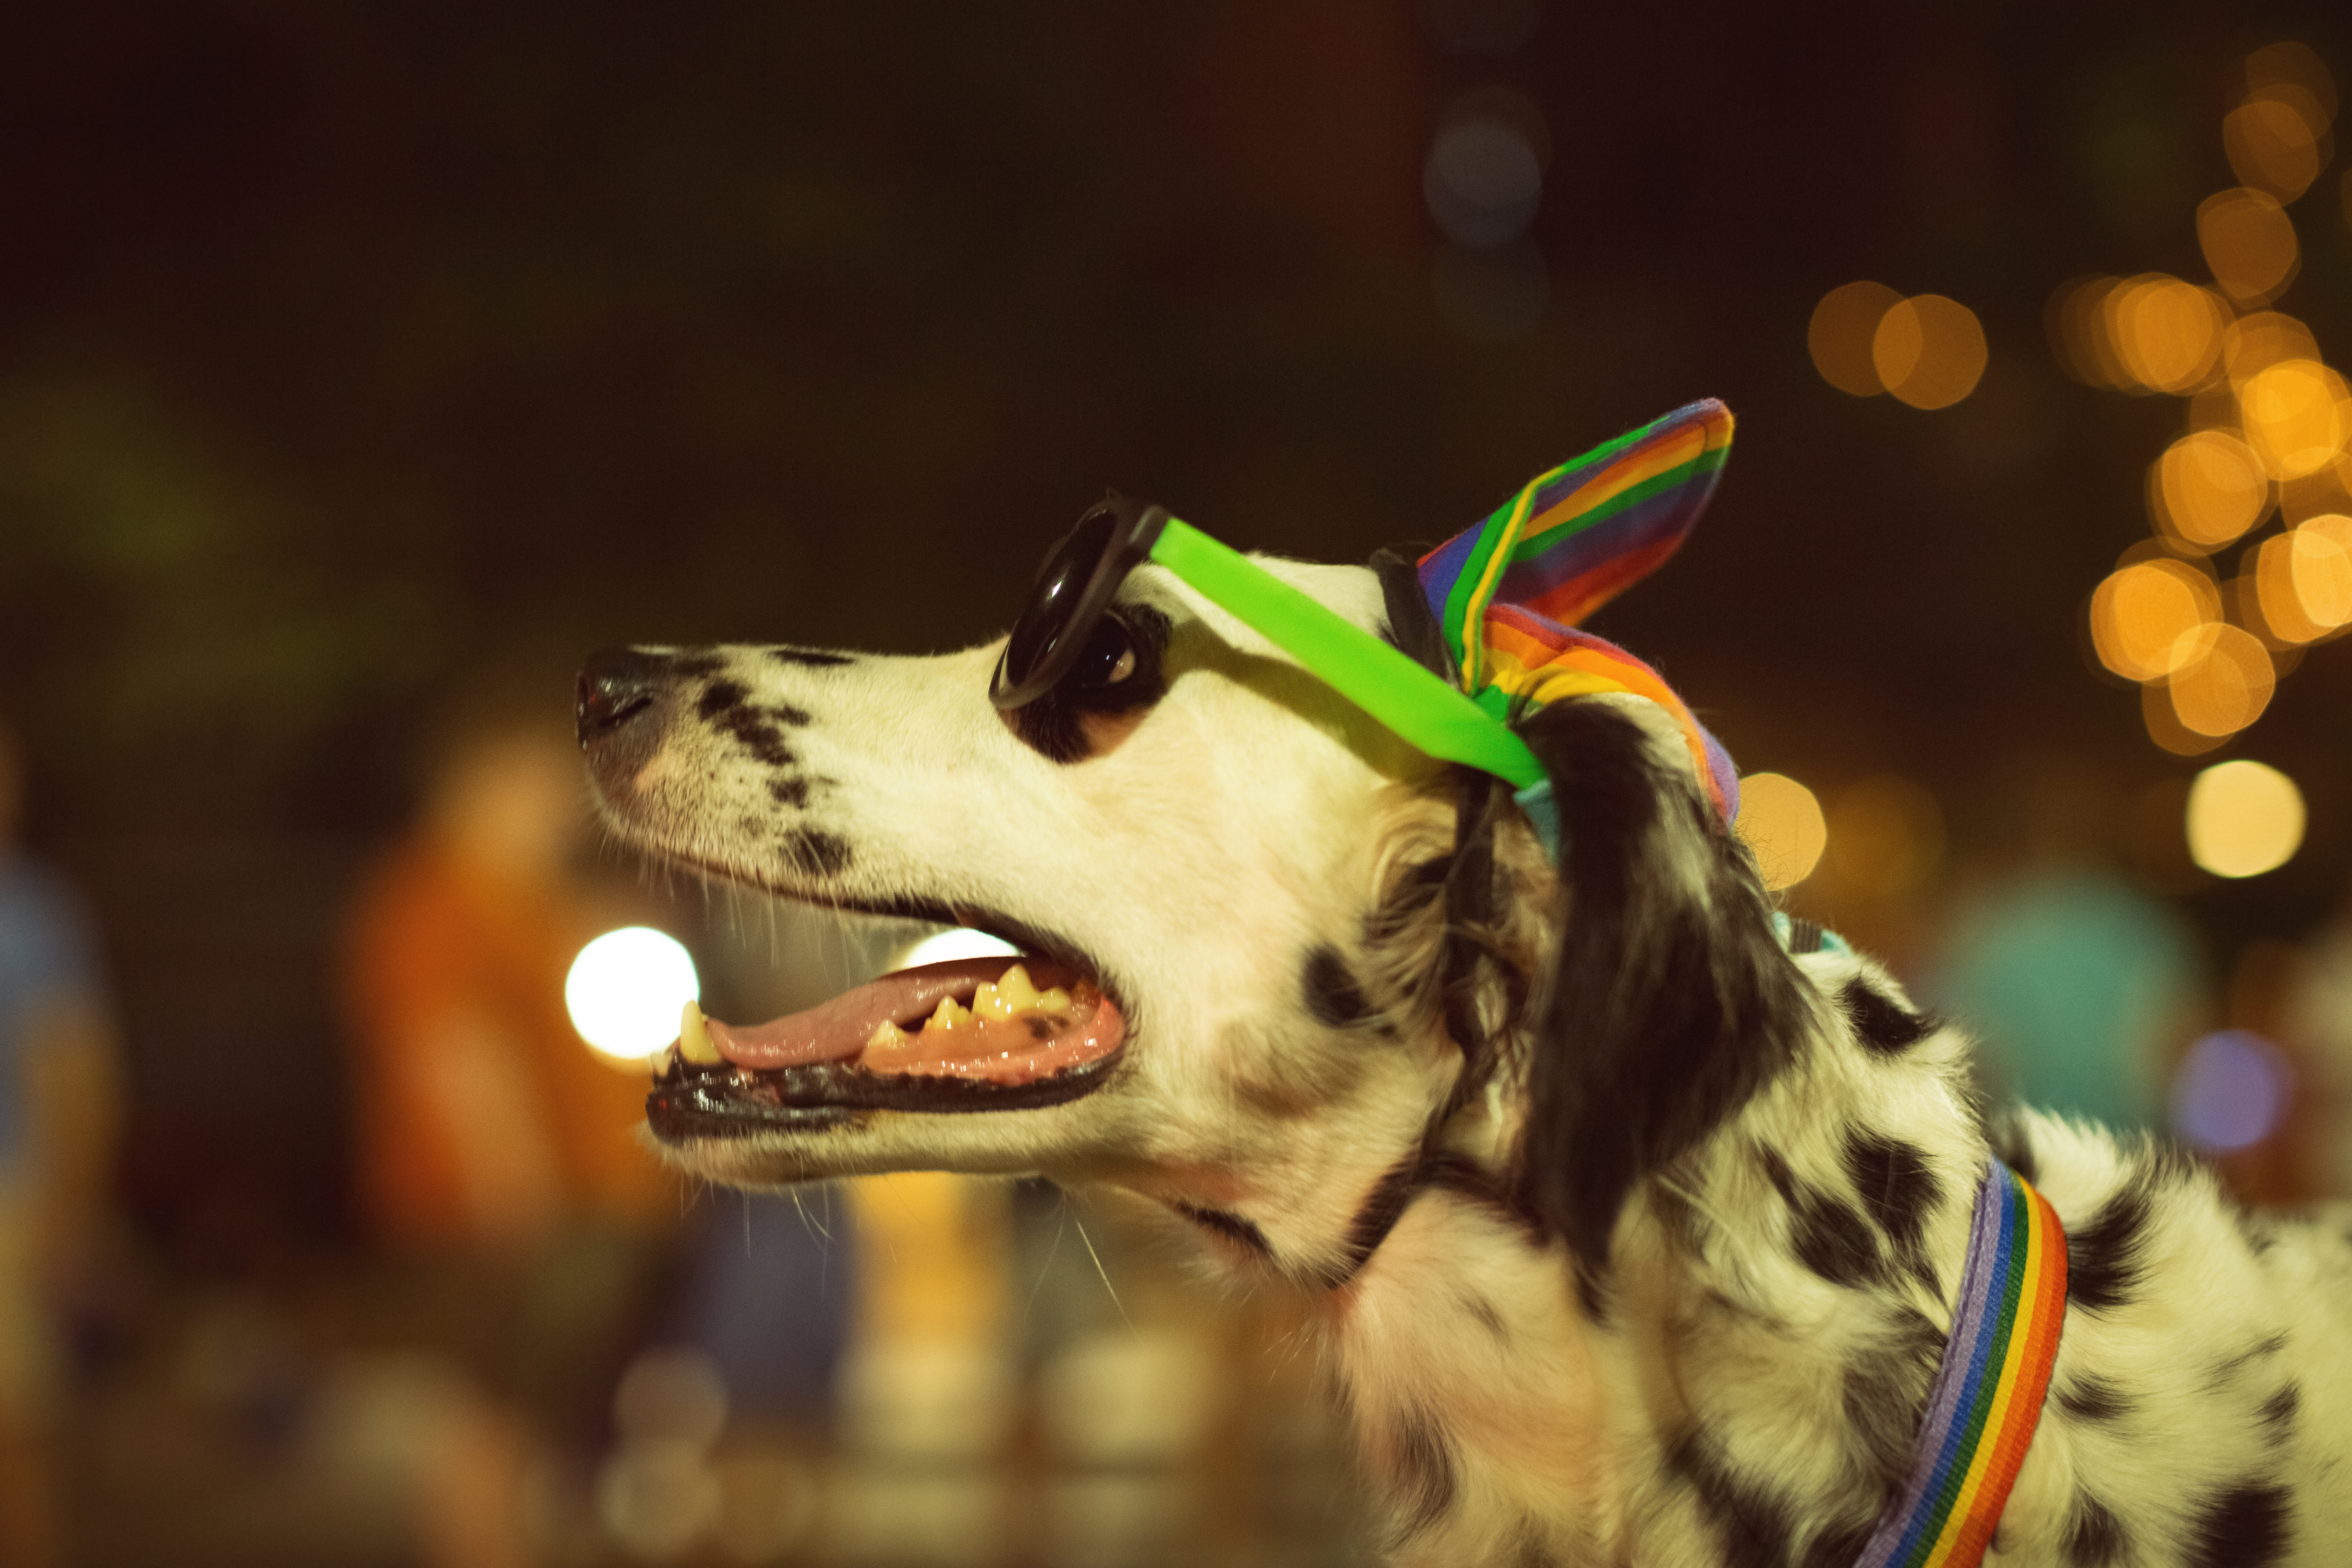 White dog with black spots, headband with rainbow-colored ears, rainbow leash and collar, against a blurry background of lights